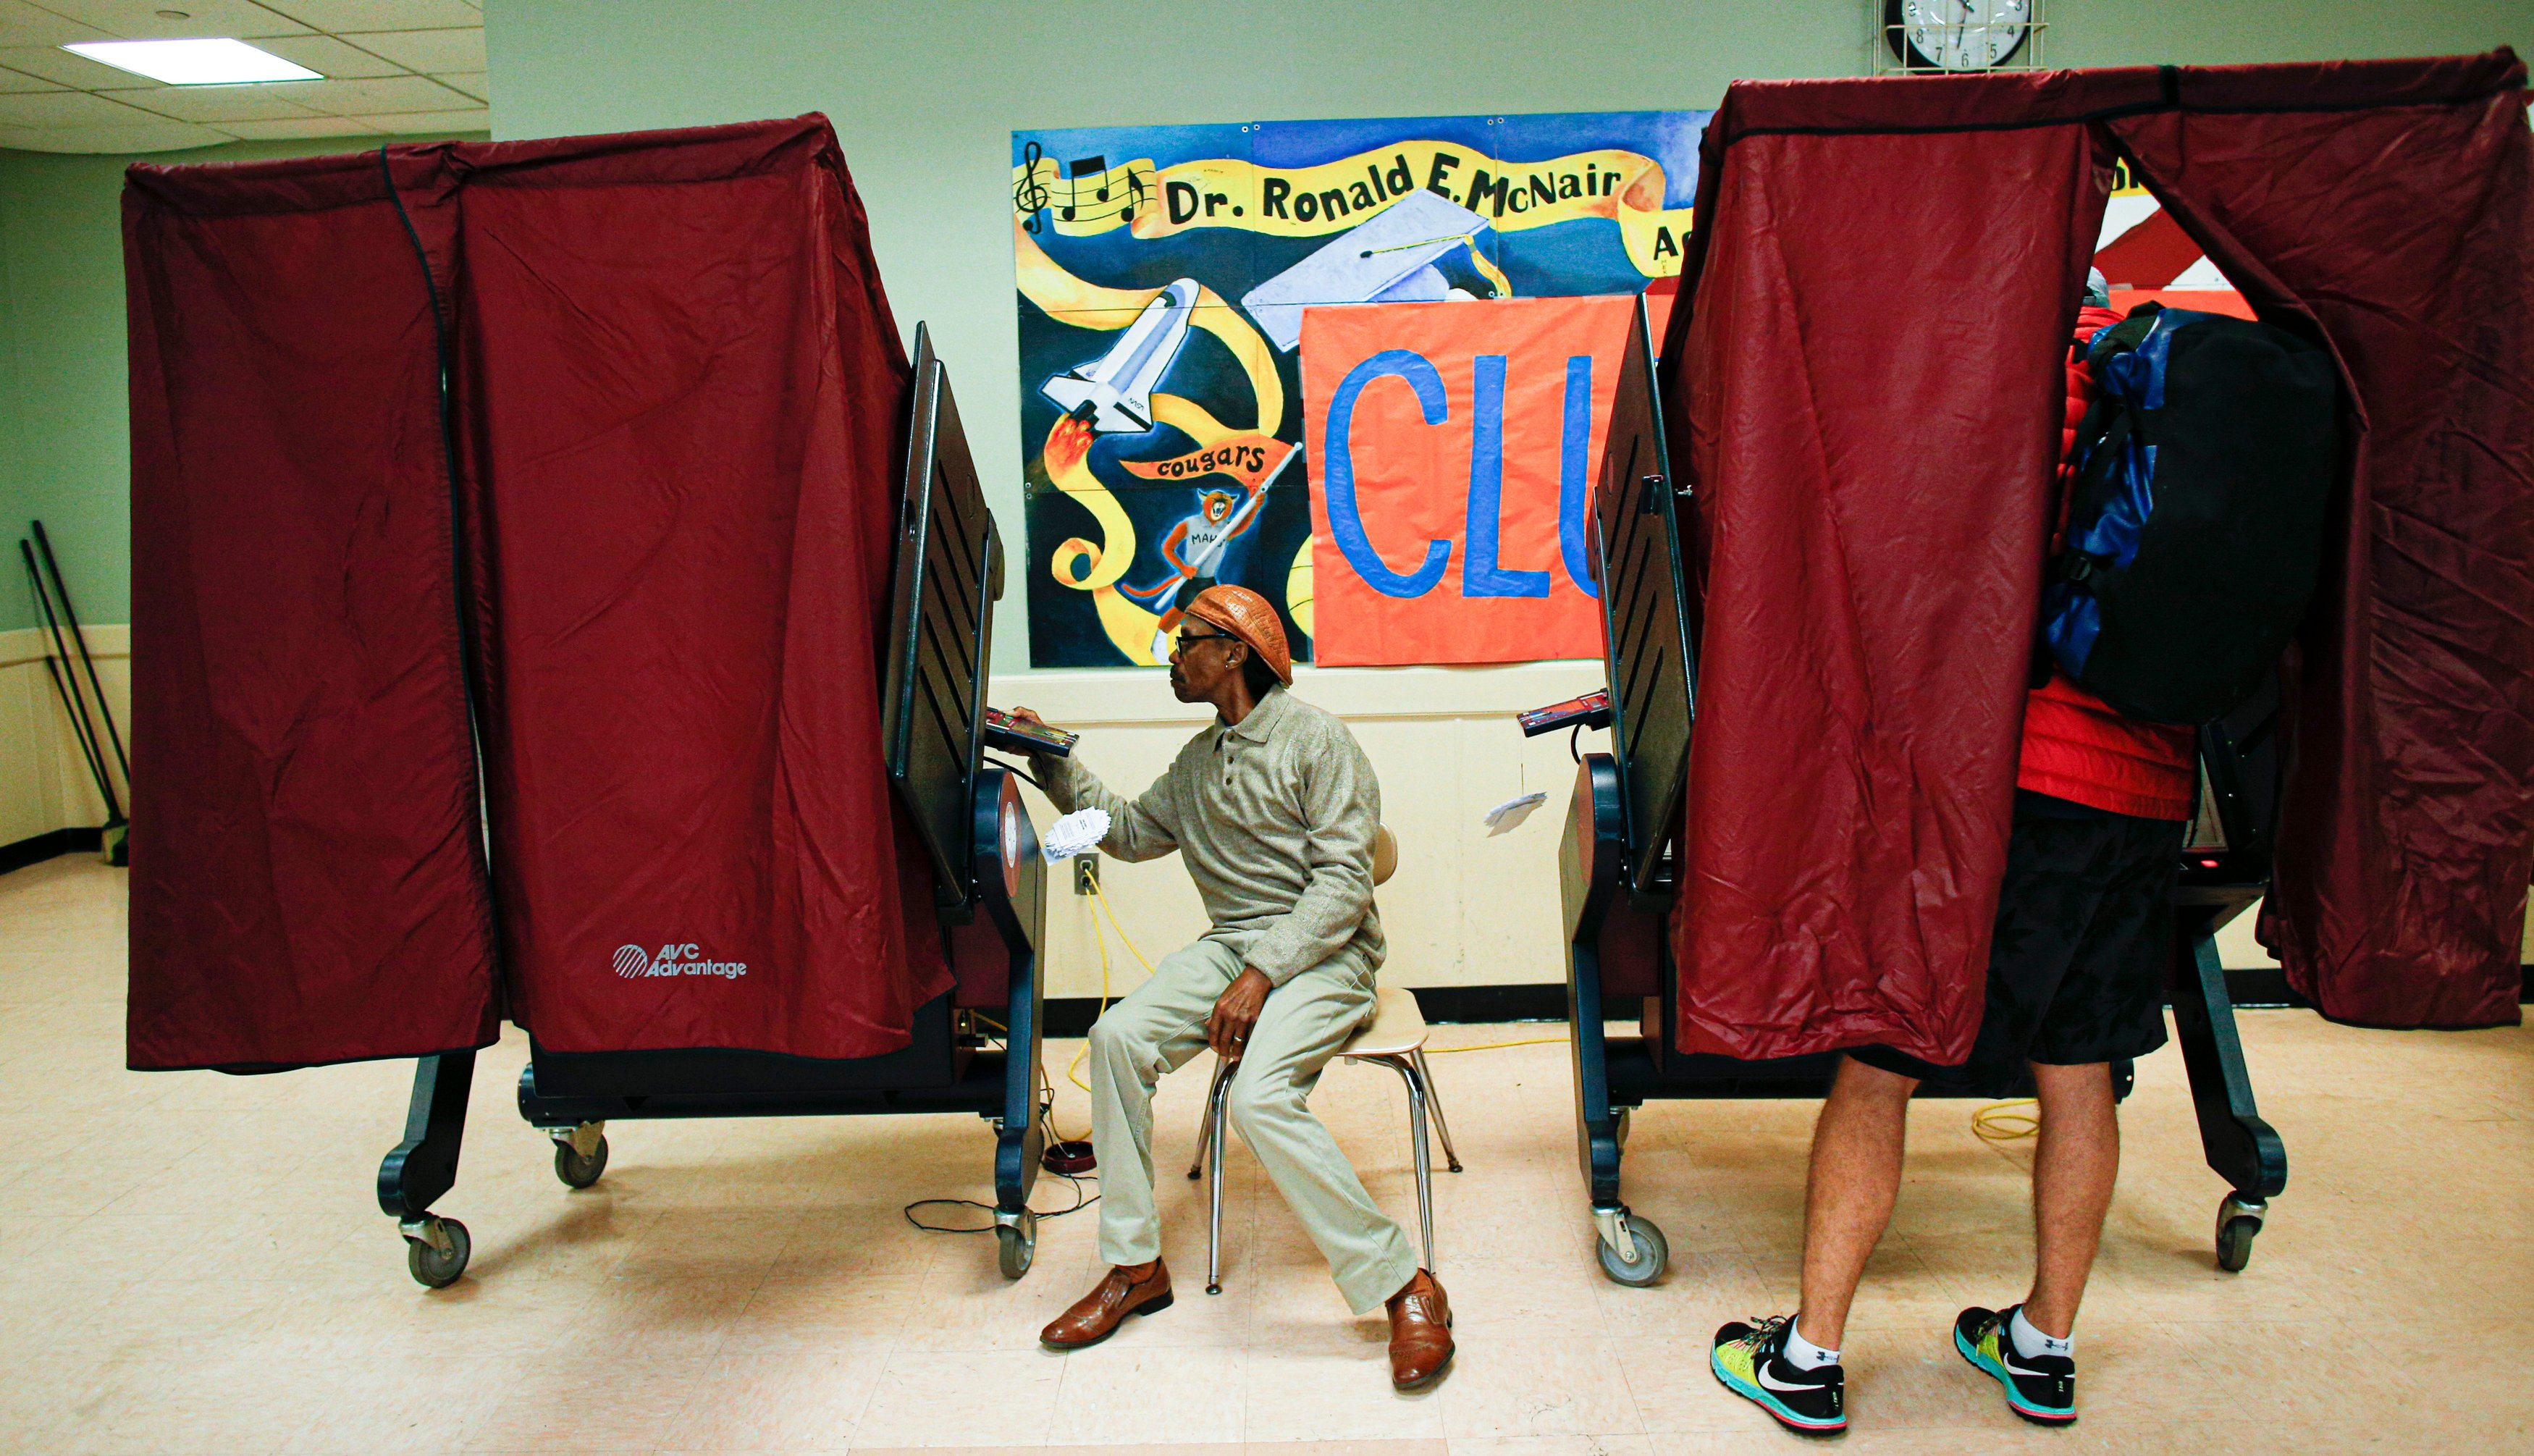 a man votes in a red-curtained polling booth at a school